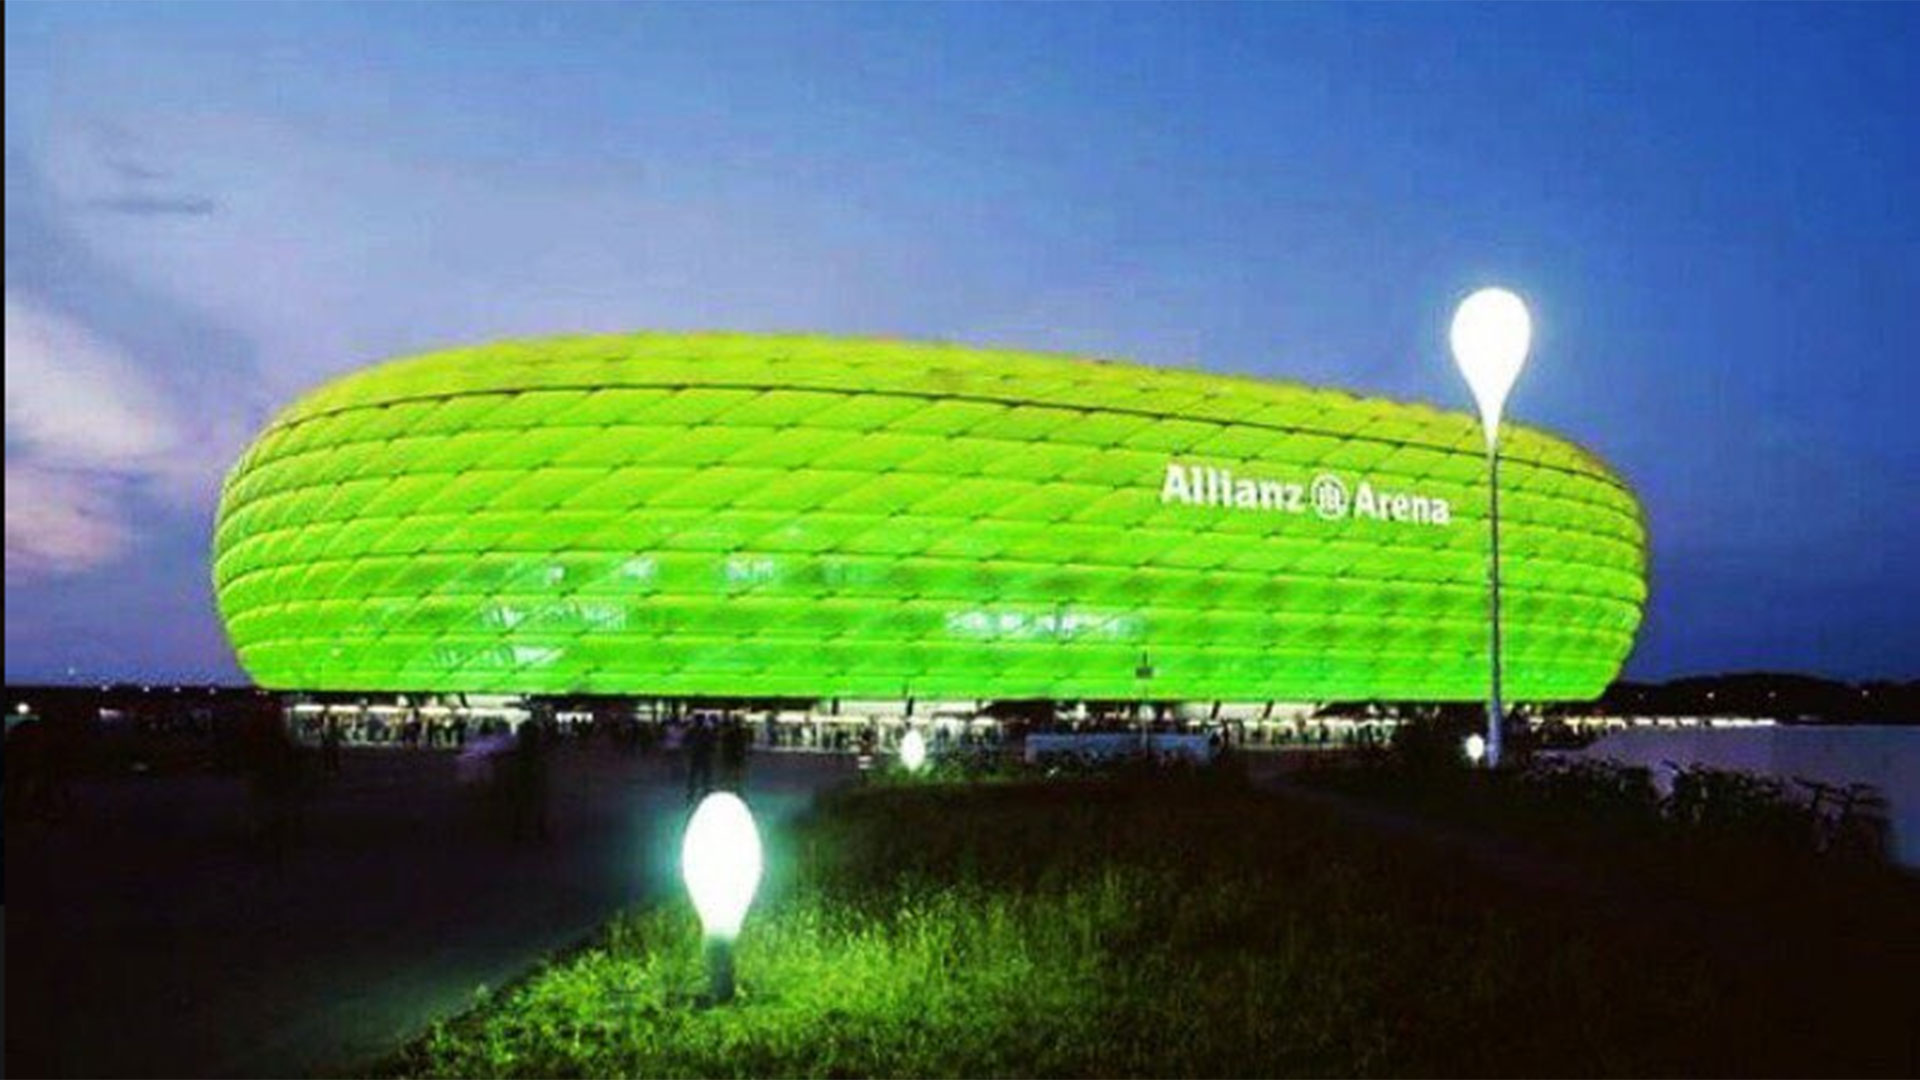 estadio-allianz-arena-munich-alemania